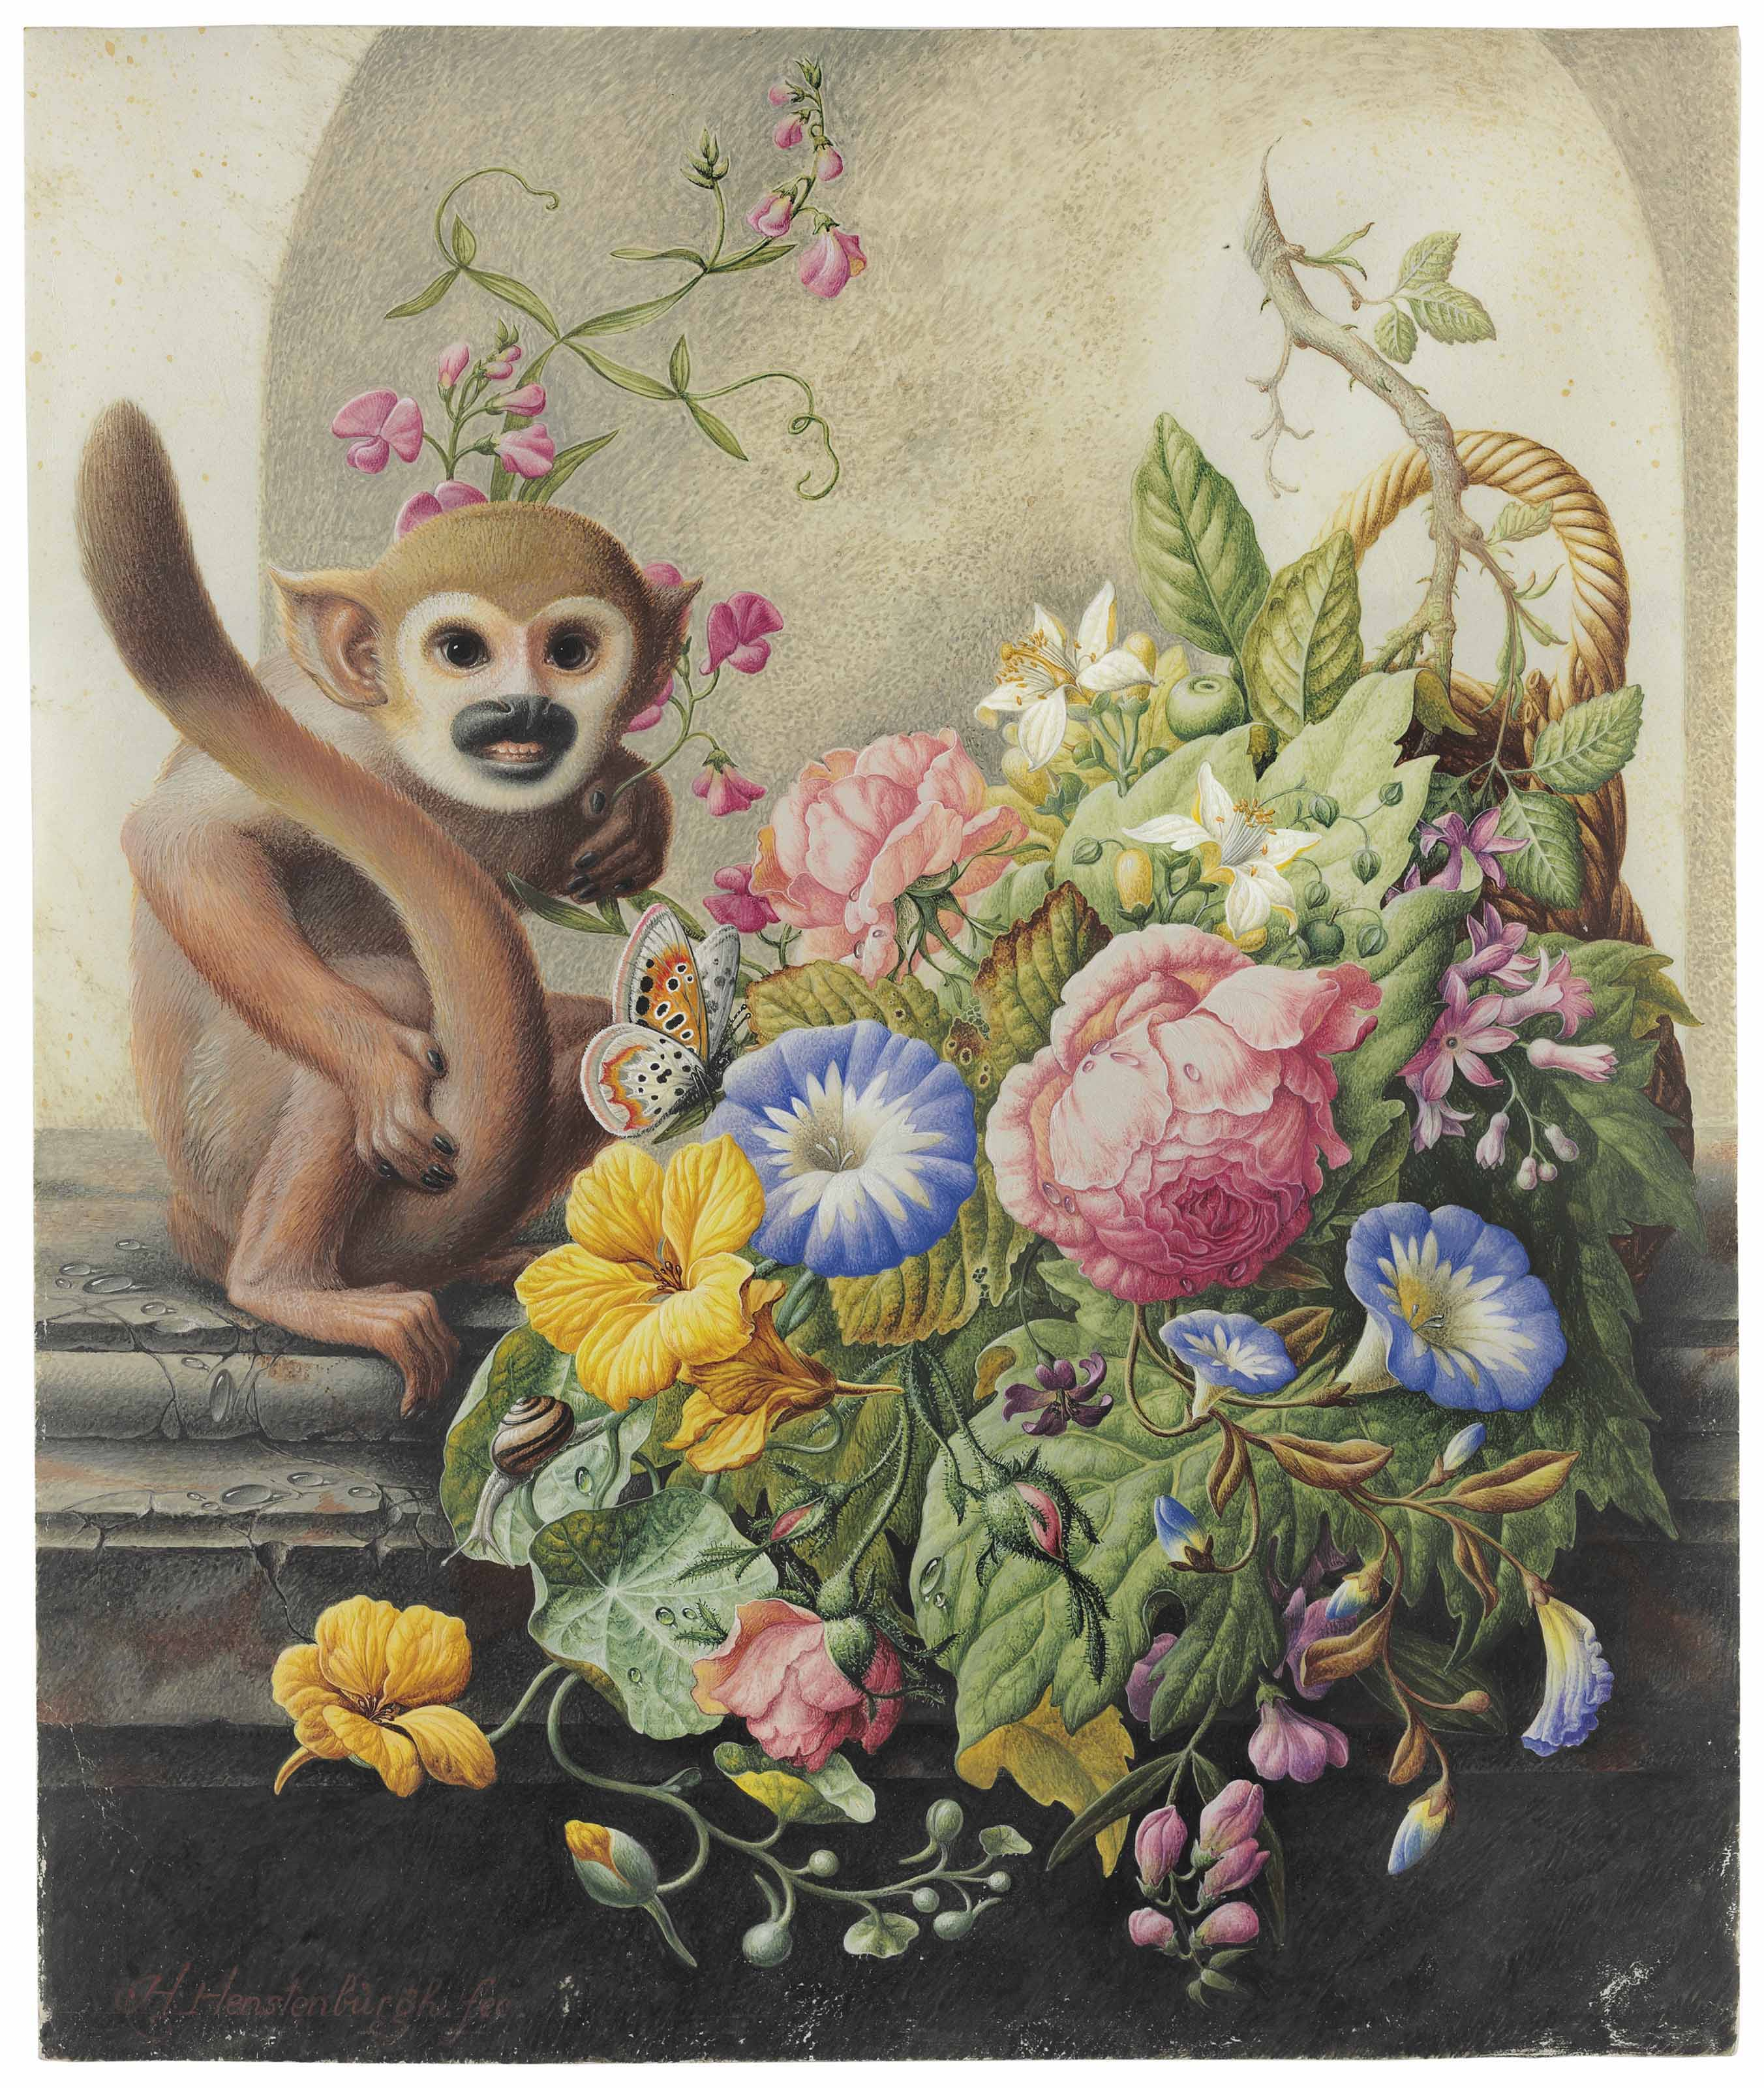 A still life with a monkey, a butterfly and a basket with flowers including Nasturtiums, Morning Glory, Roses and Everlasting Pea